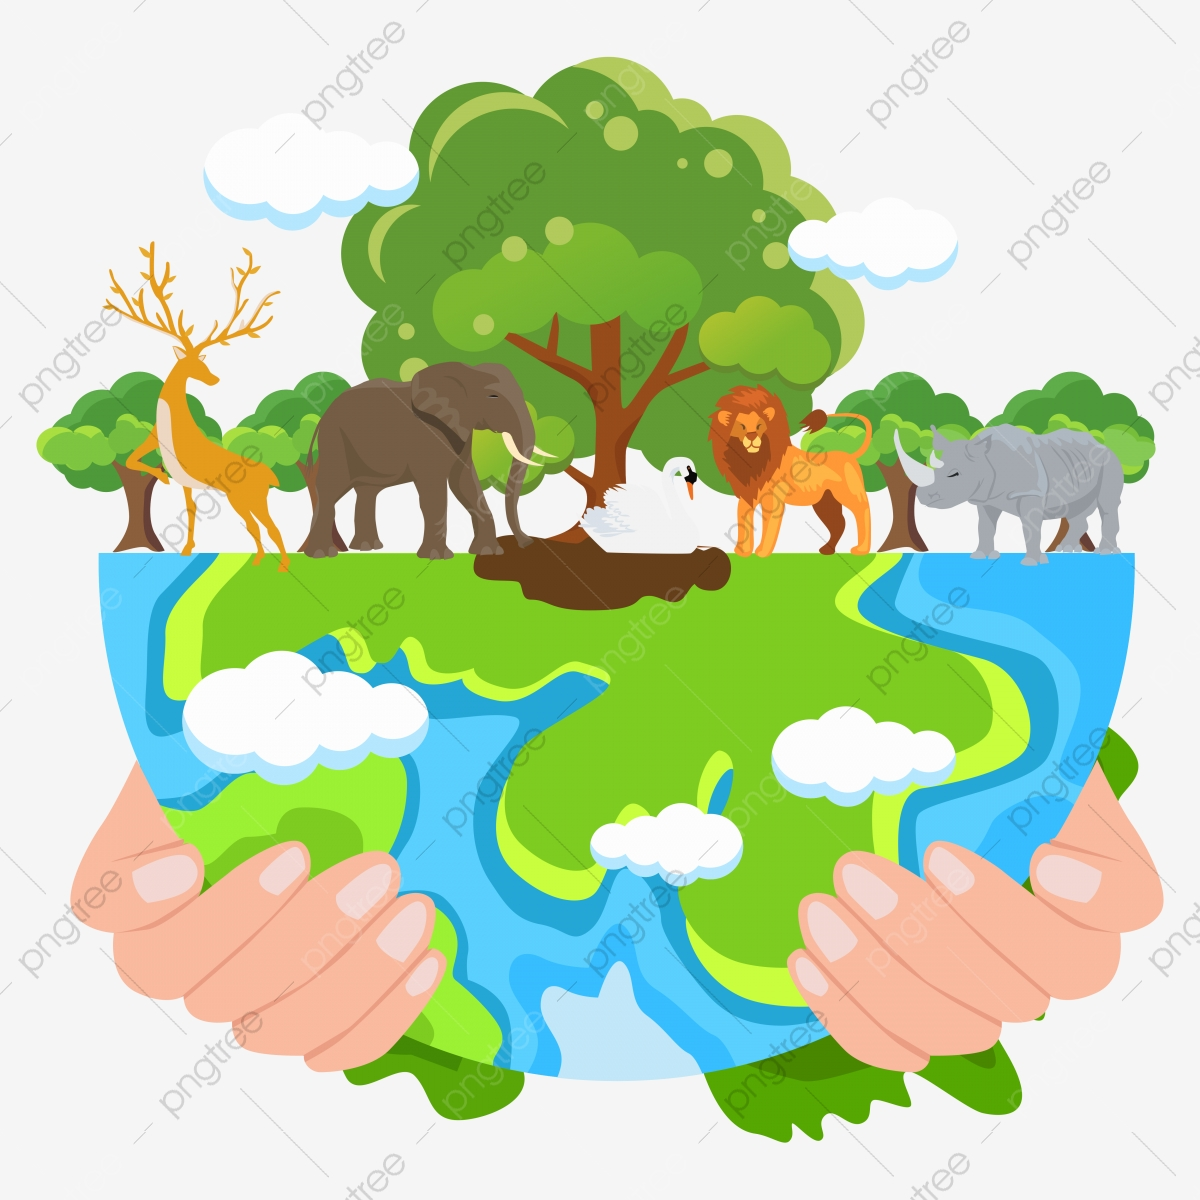 Environment Clipart Png Images Vector And Psd Files Free Download On Pngtree